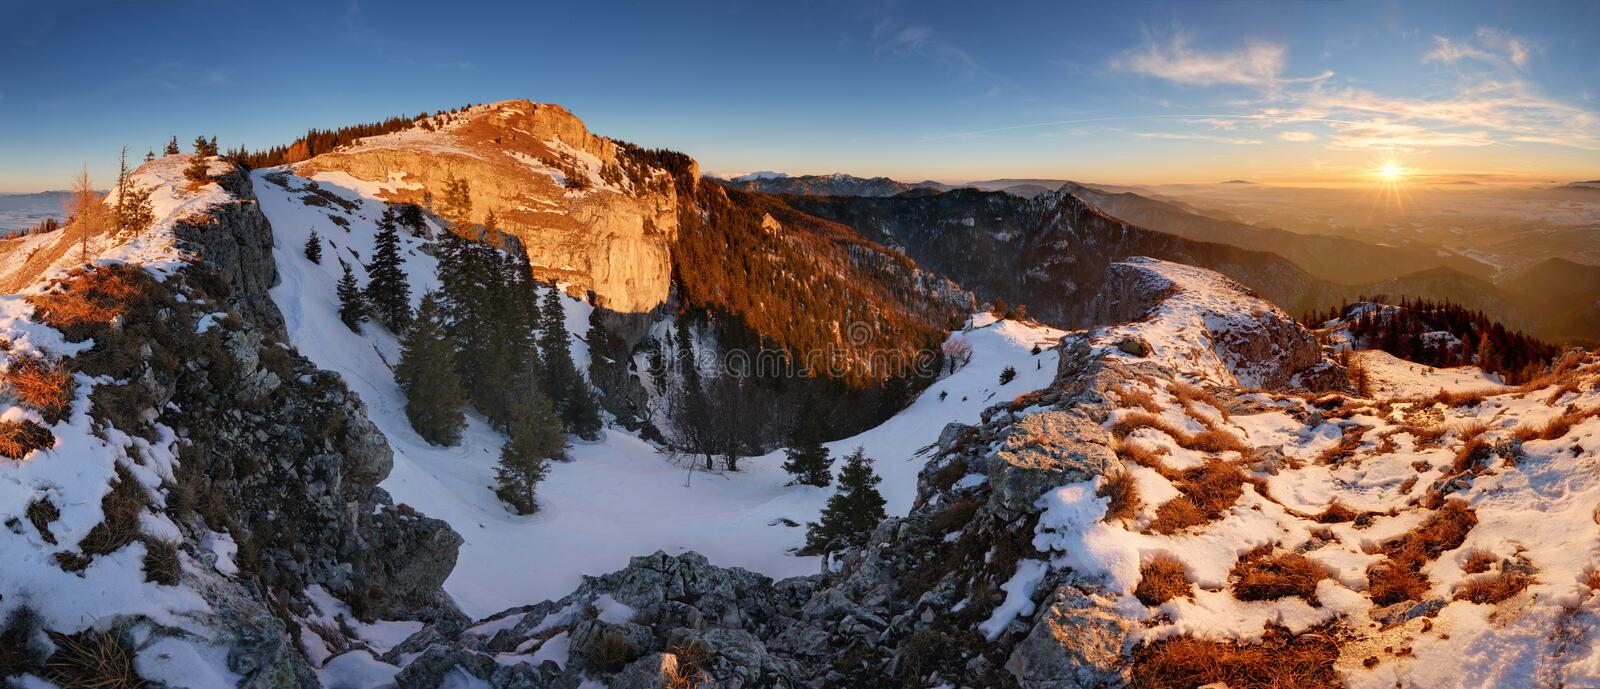 Colorful winter sunrise in the mountains stock image